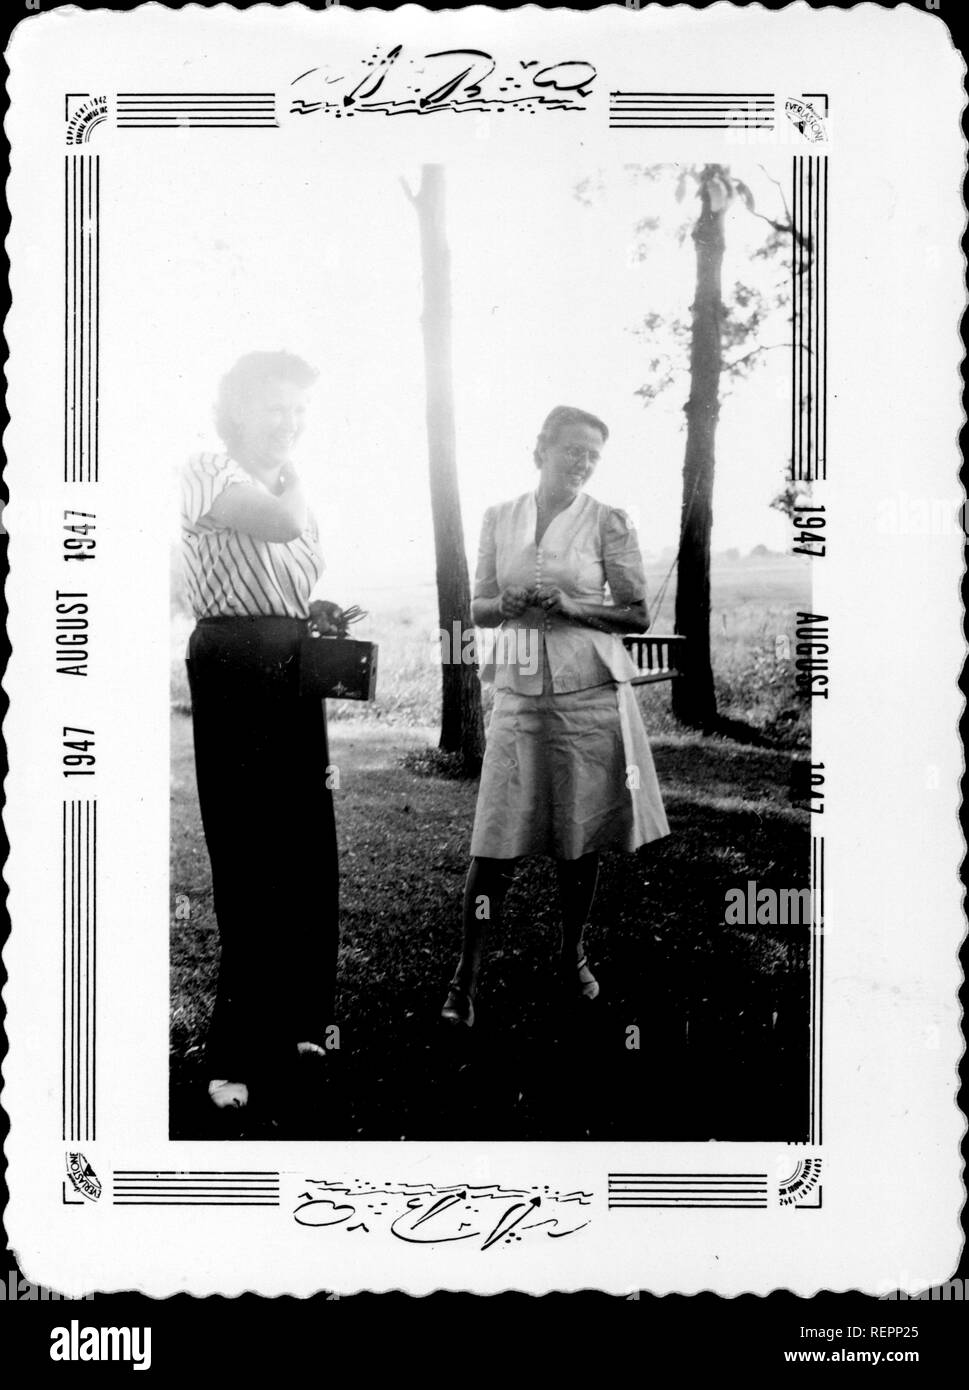 Two women stand in an outdoor setting among trees, posing and smiling, as one woman prepares to take the other woman's photograph using a Kodak Brownie box camera, August, 1947. () - Stock Image